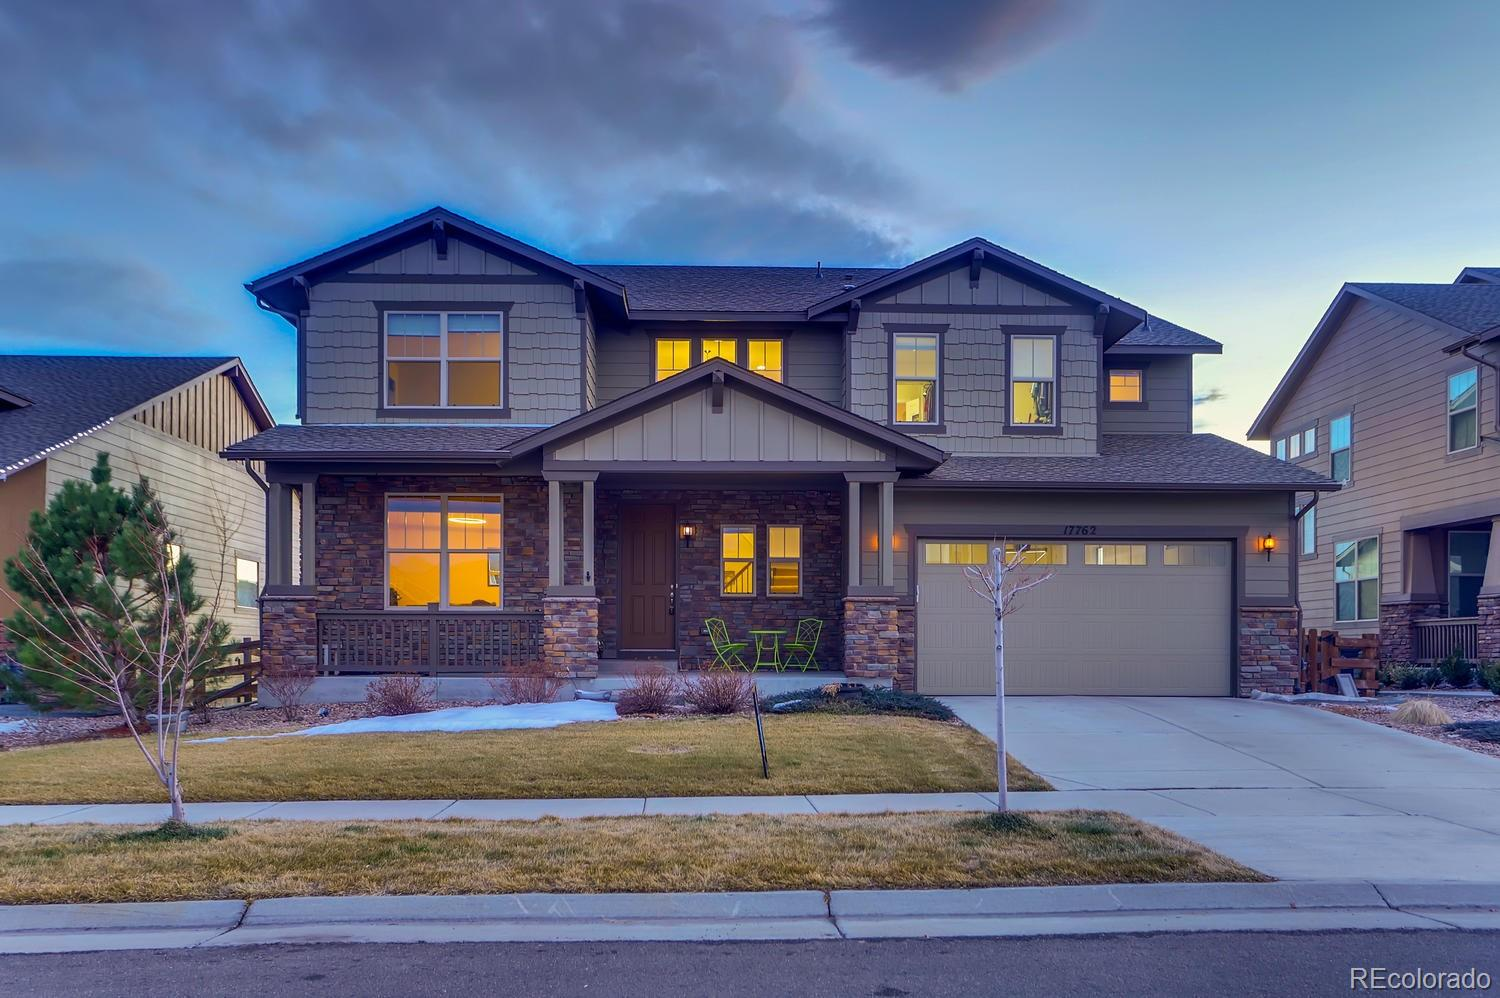 MLS# 4767152 - 1 - 17762 W 83rd Place, Arvada, CO 80007